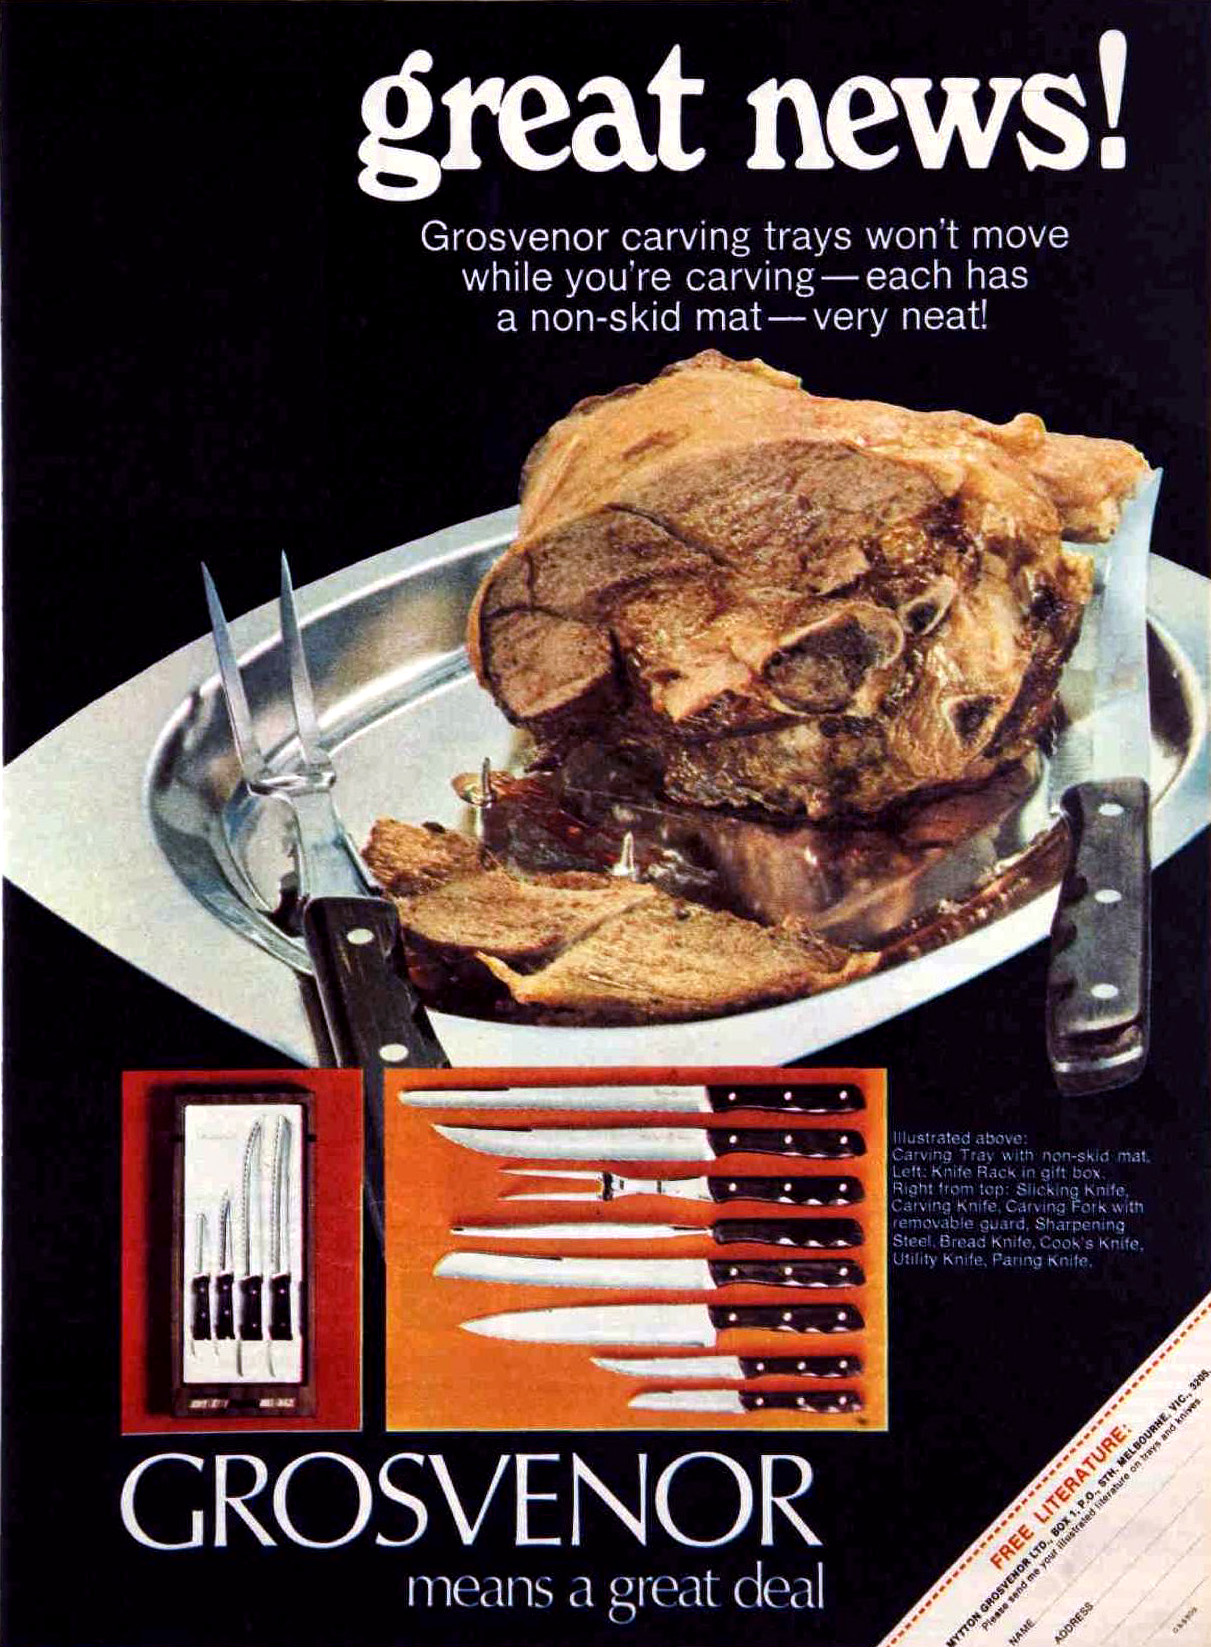 1968 food advert